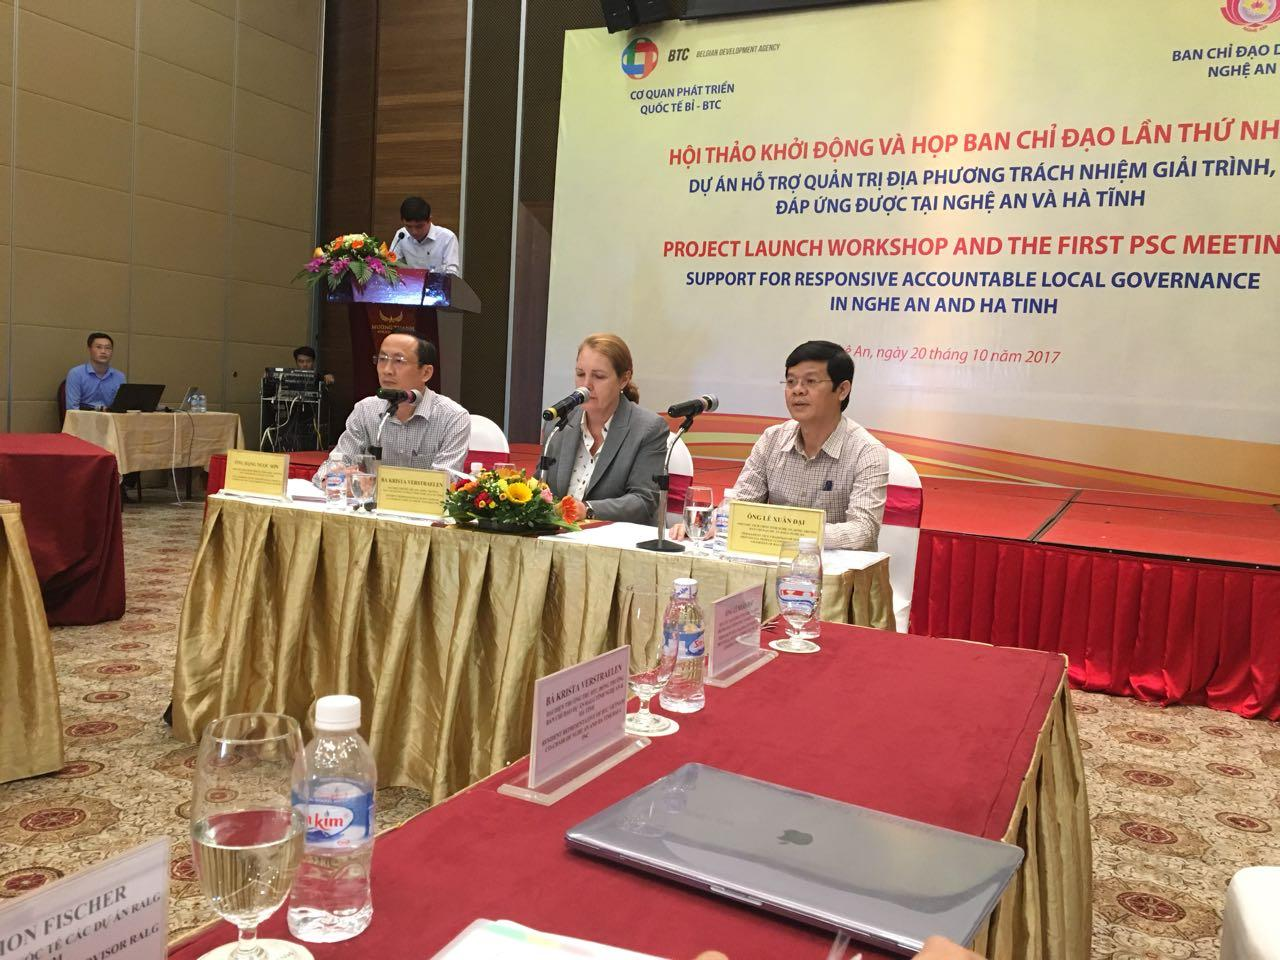 First joint project launch workshop and PSC in Vinh